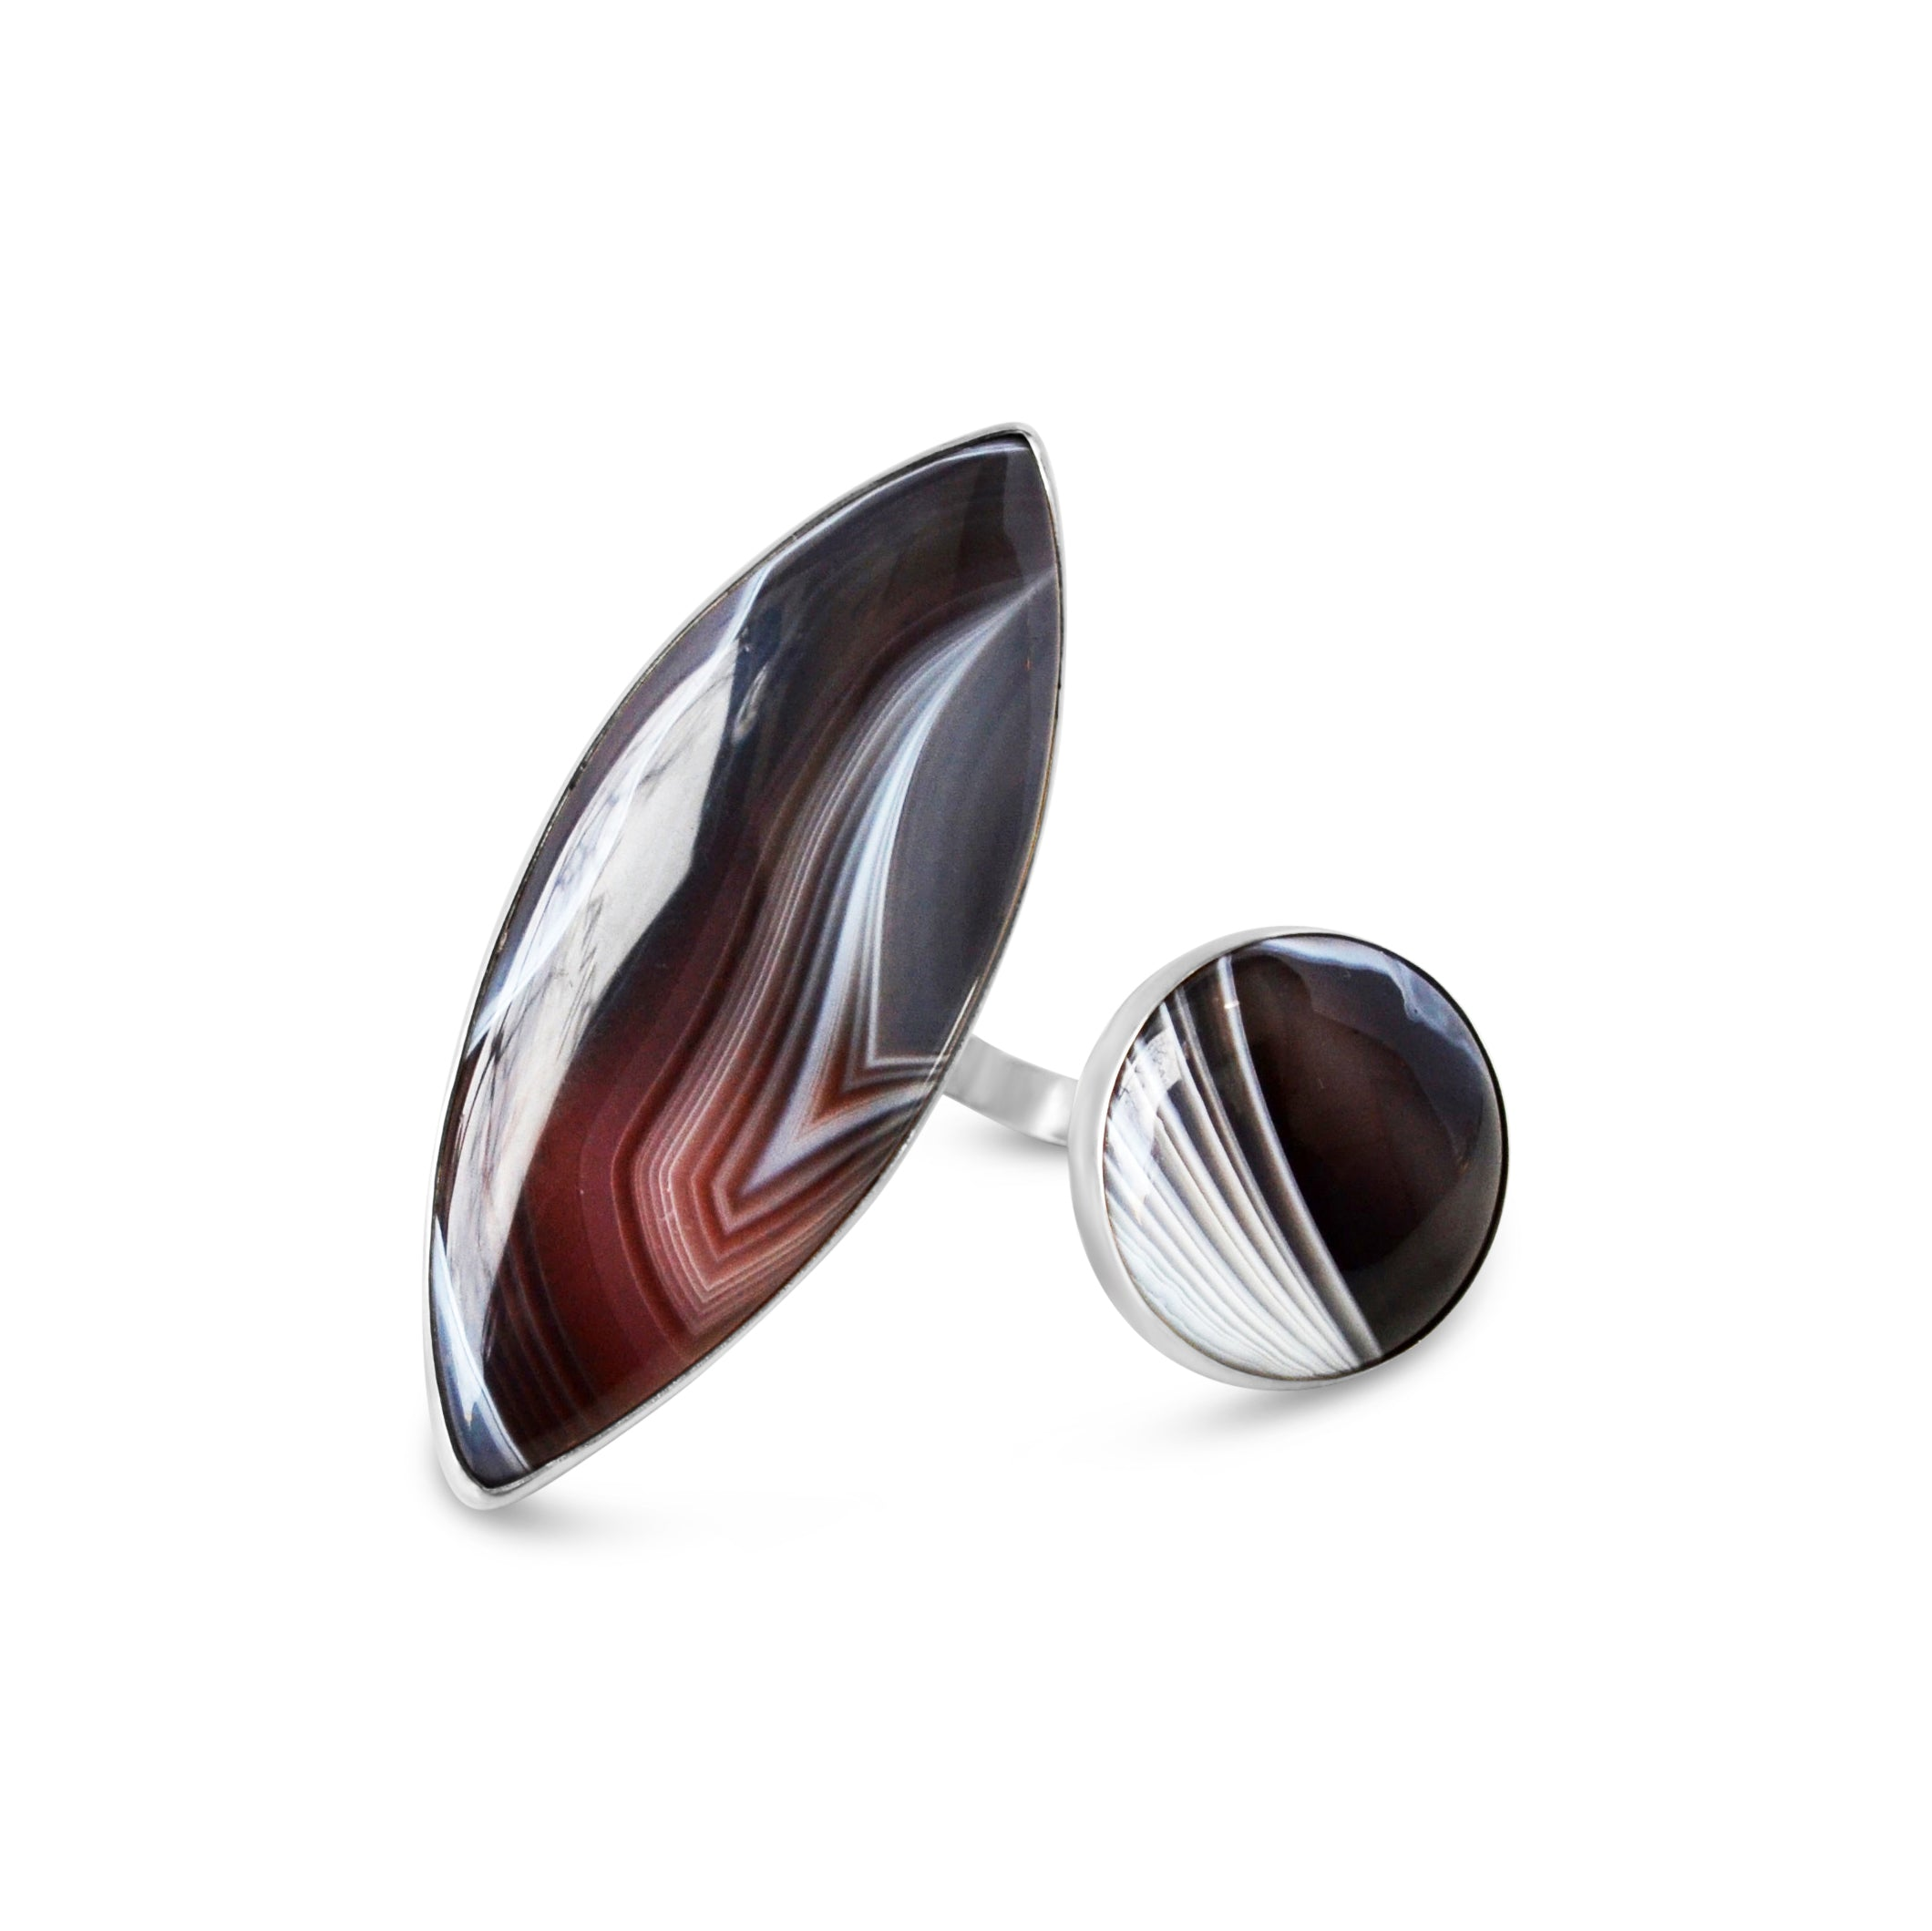 Botswana Agate Statement Ring